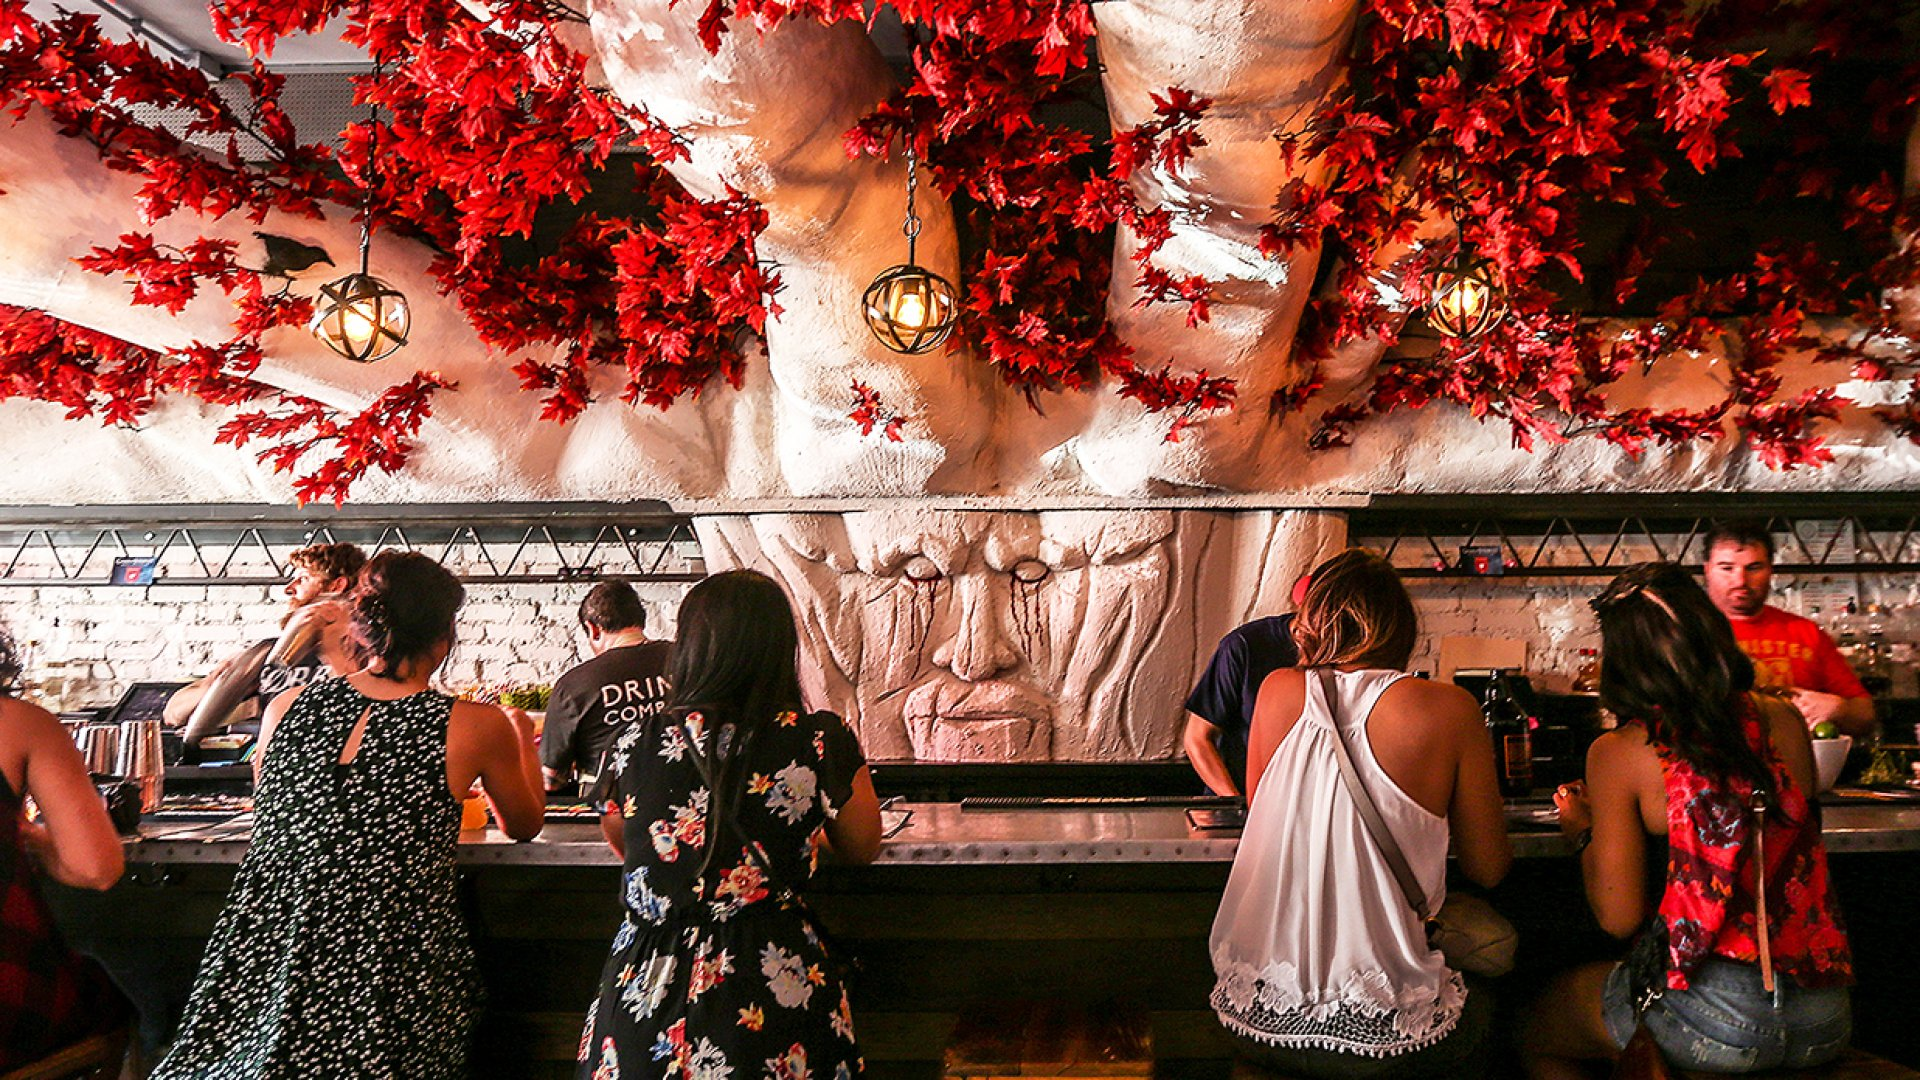 At This 'Game of Thrones' Pop-Up Bar, Every Night Is a Pre-Party Before the Big Season Premiere